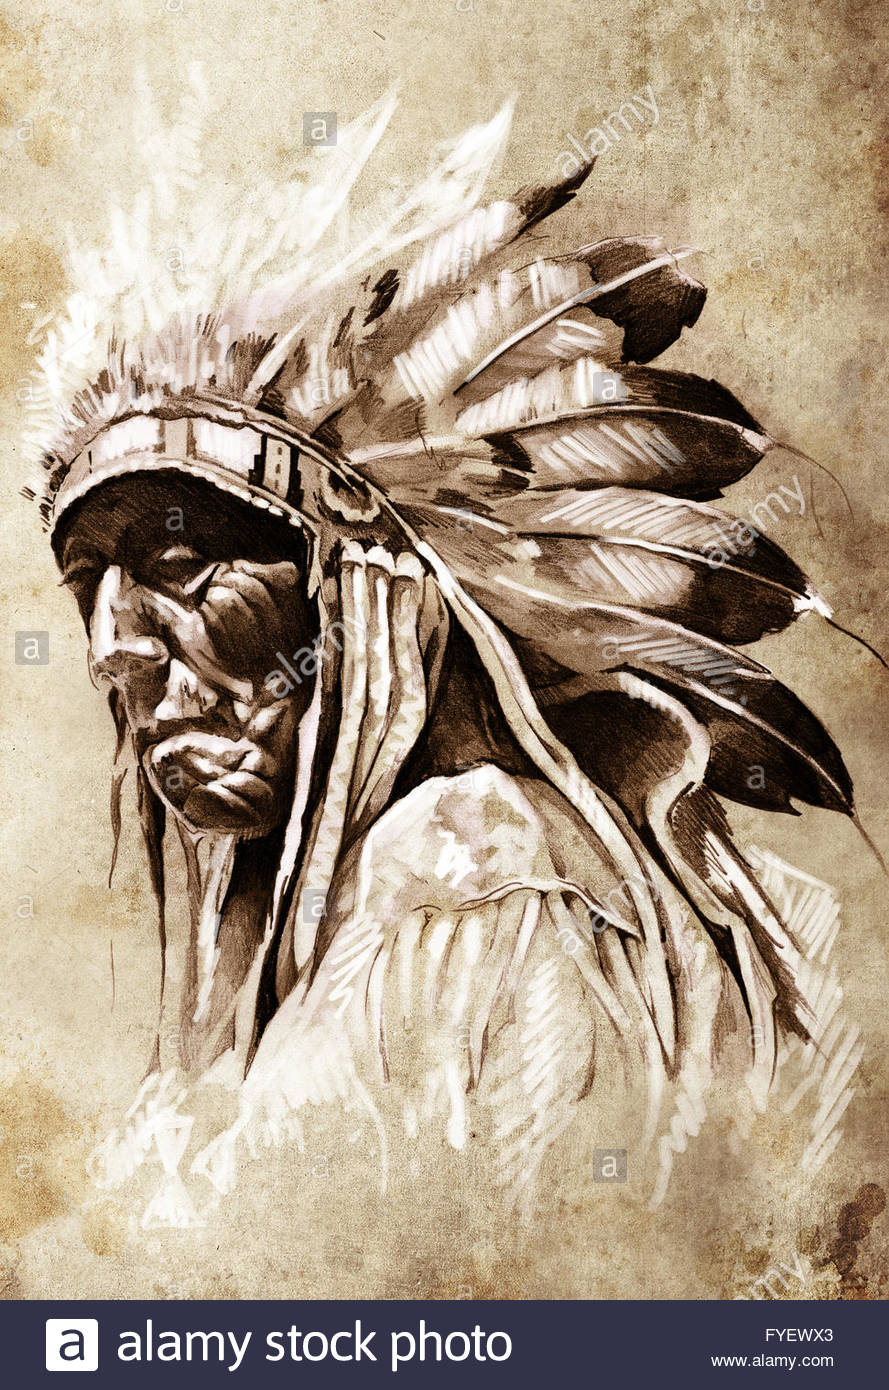 889x1390 Sketch Of Tattoo Art, Indian Head, Chief, Vintage Style Stock